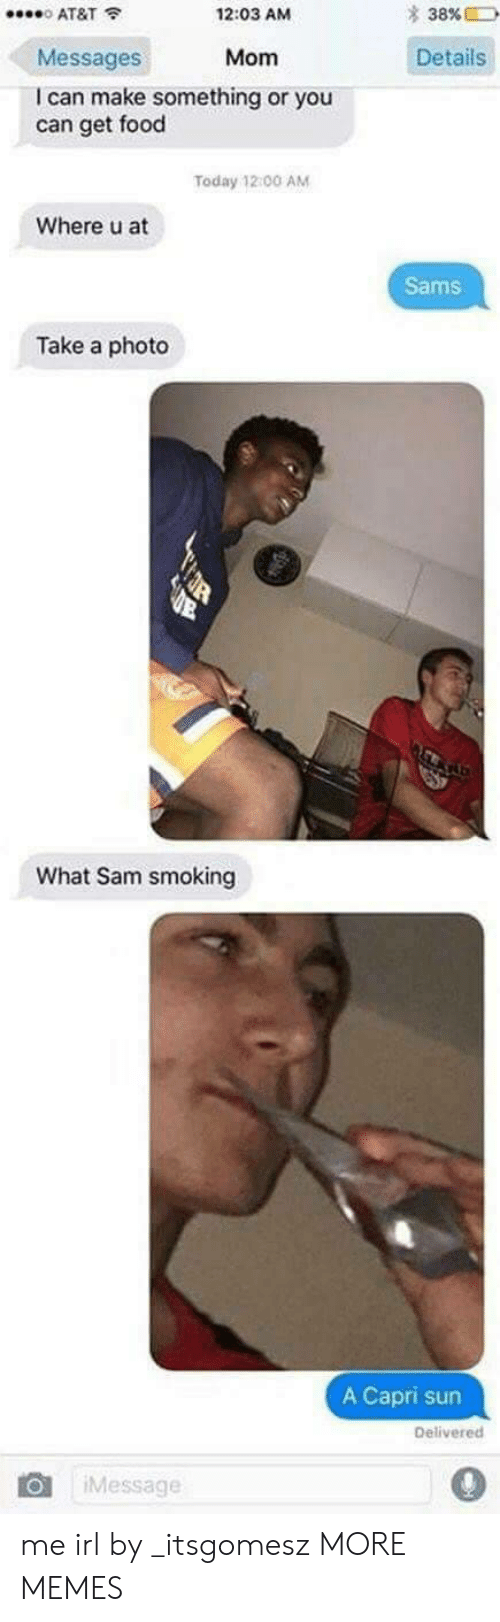 Sams: * 38%  0 AT&T  Messages  I can make something or you  12:03 AM  Mom Details  can get food  Today 12 00 AM  Where u at  Sams  Take a photo  What Sam smoking  A Capri sun  Delivered  Message  0 me irl by _itsgomesz MORE MEMES